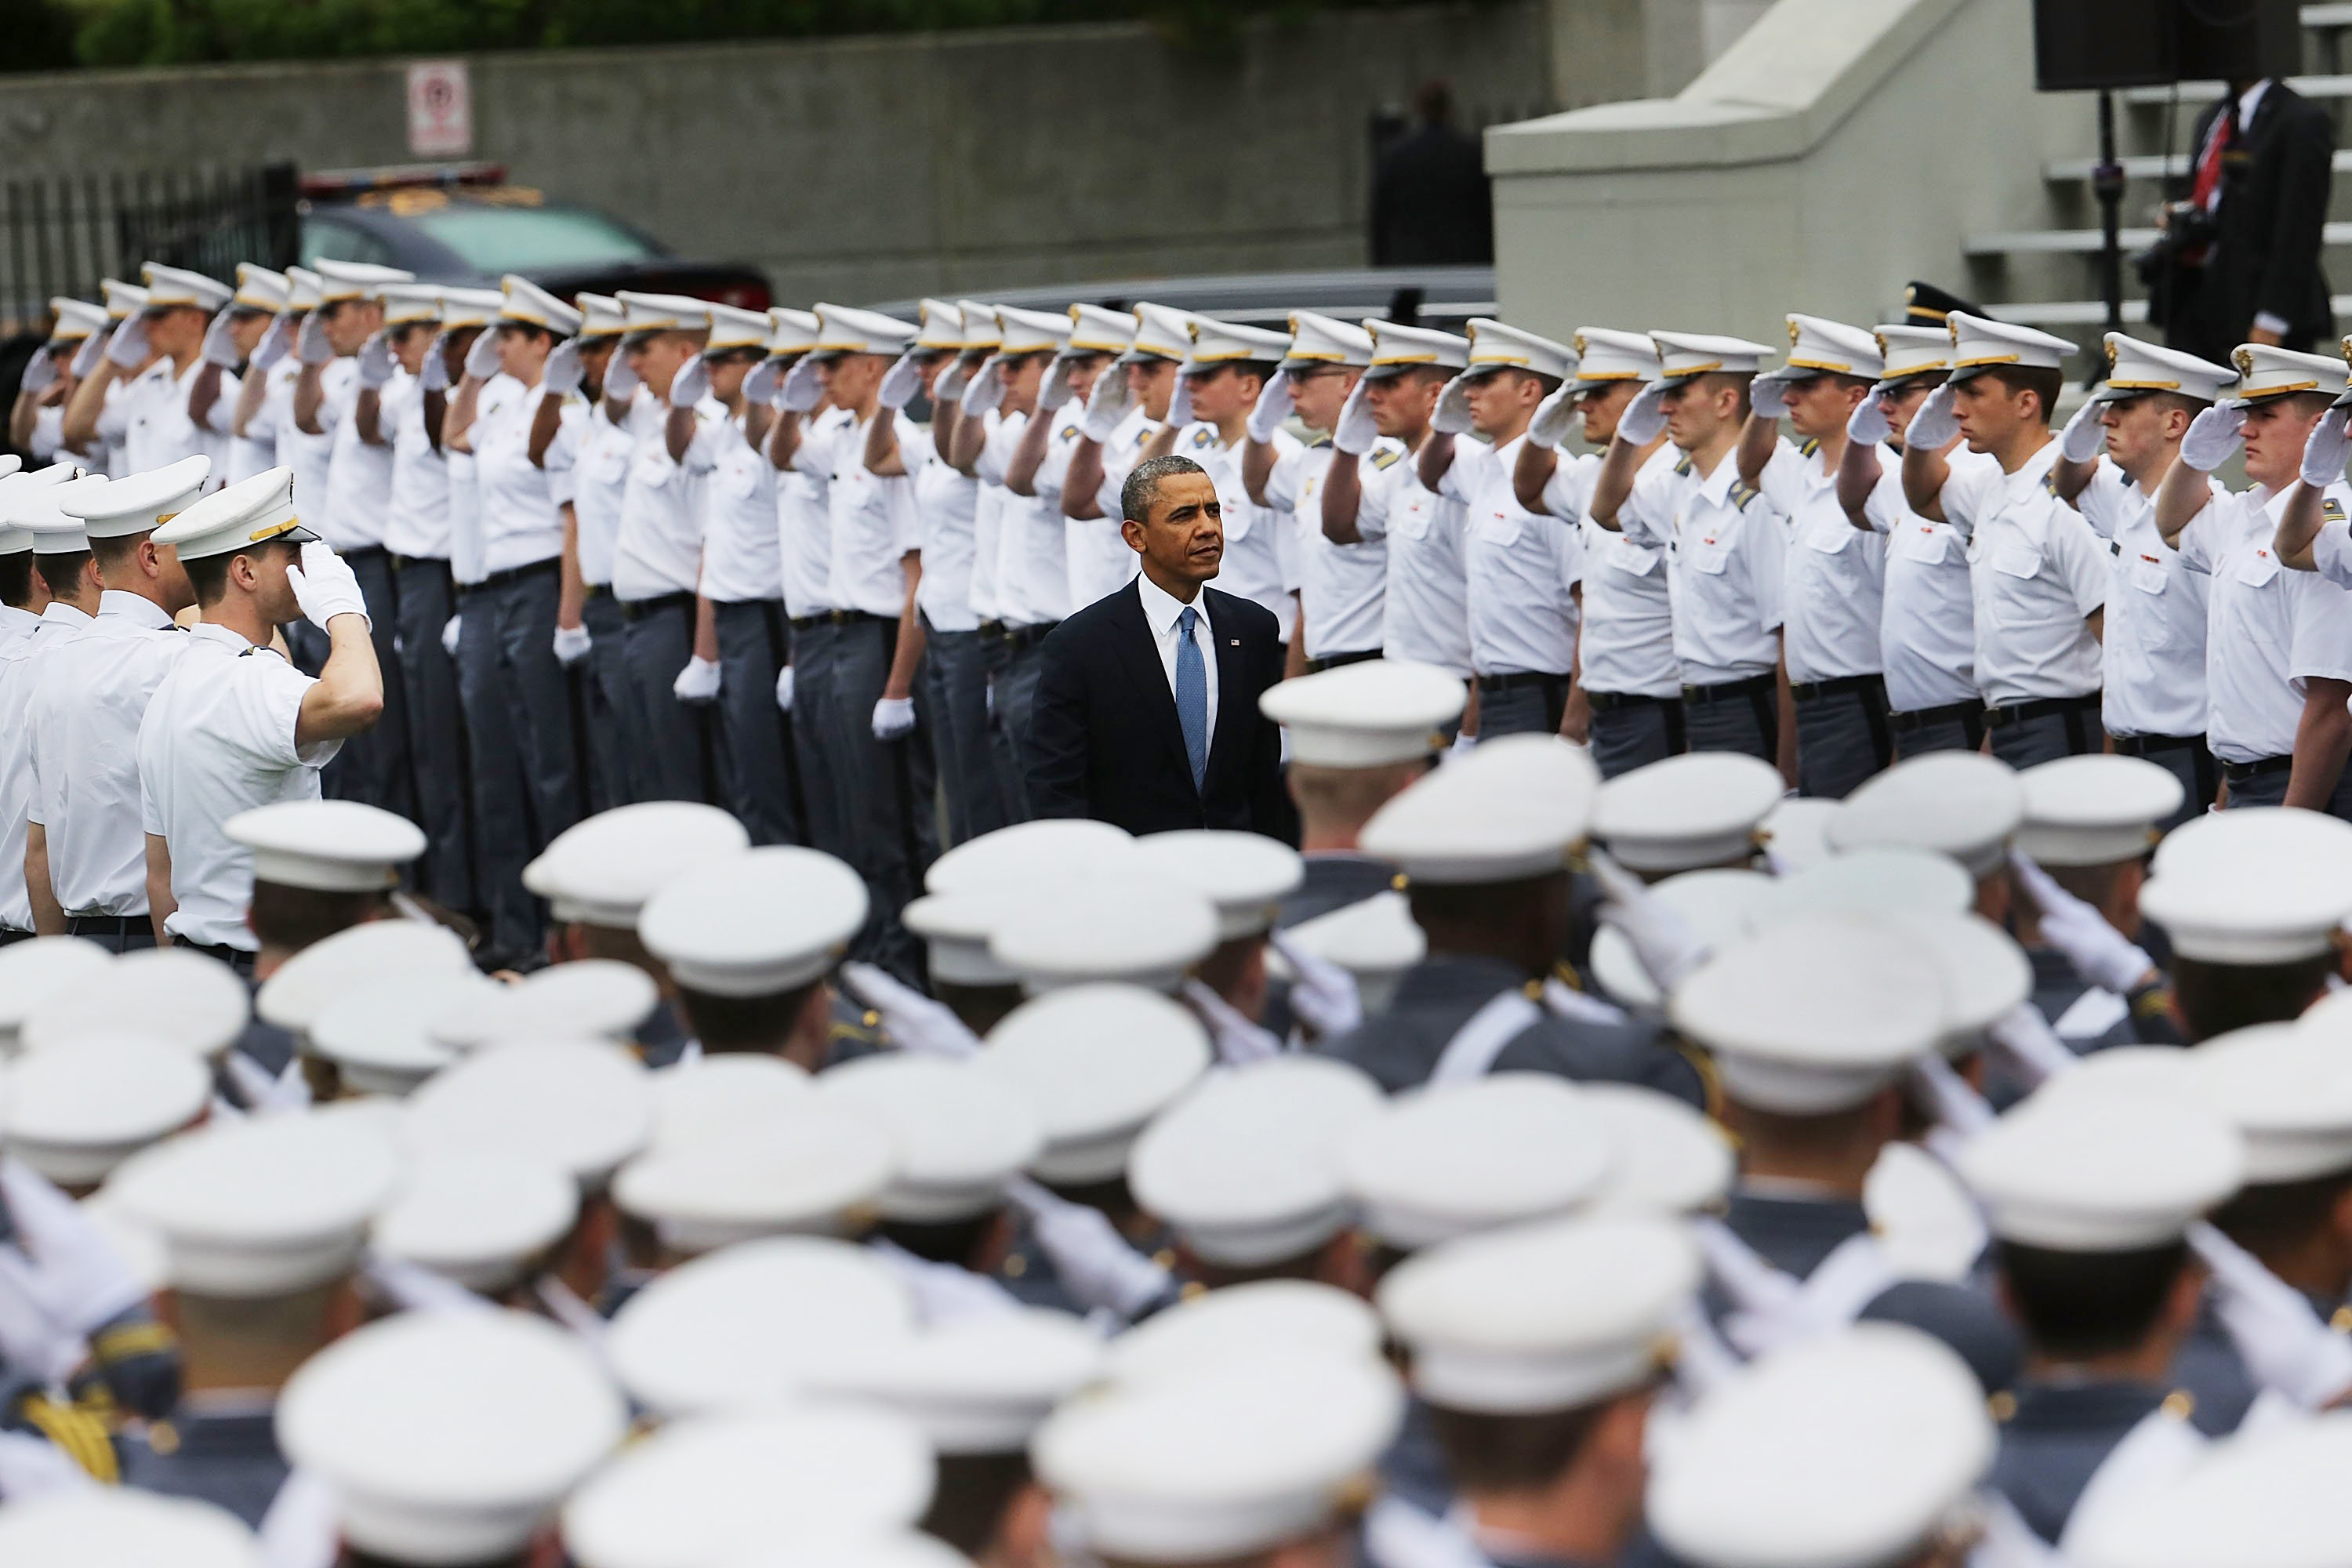 President Barack Obama enters the stadium at West Point to give the commencement address at the graduation ceremony at the U.S. Military Academy on May 28, 2014 in West Point, N.Y.